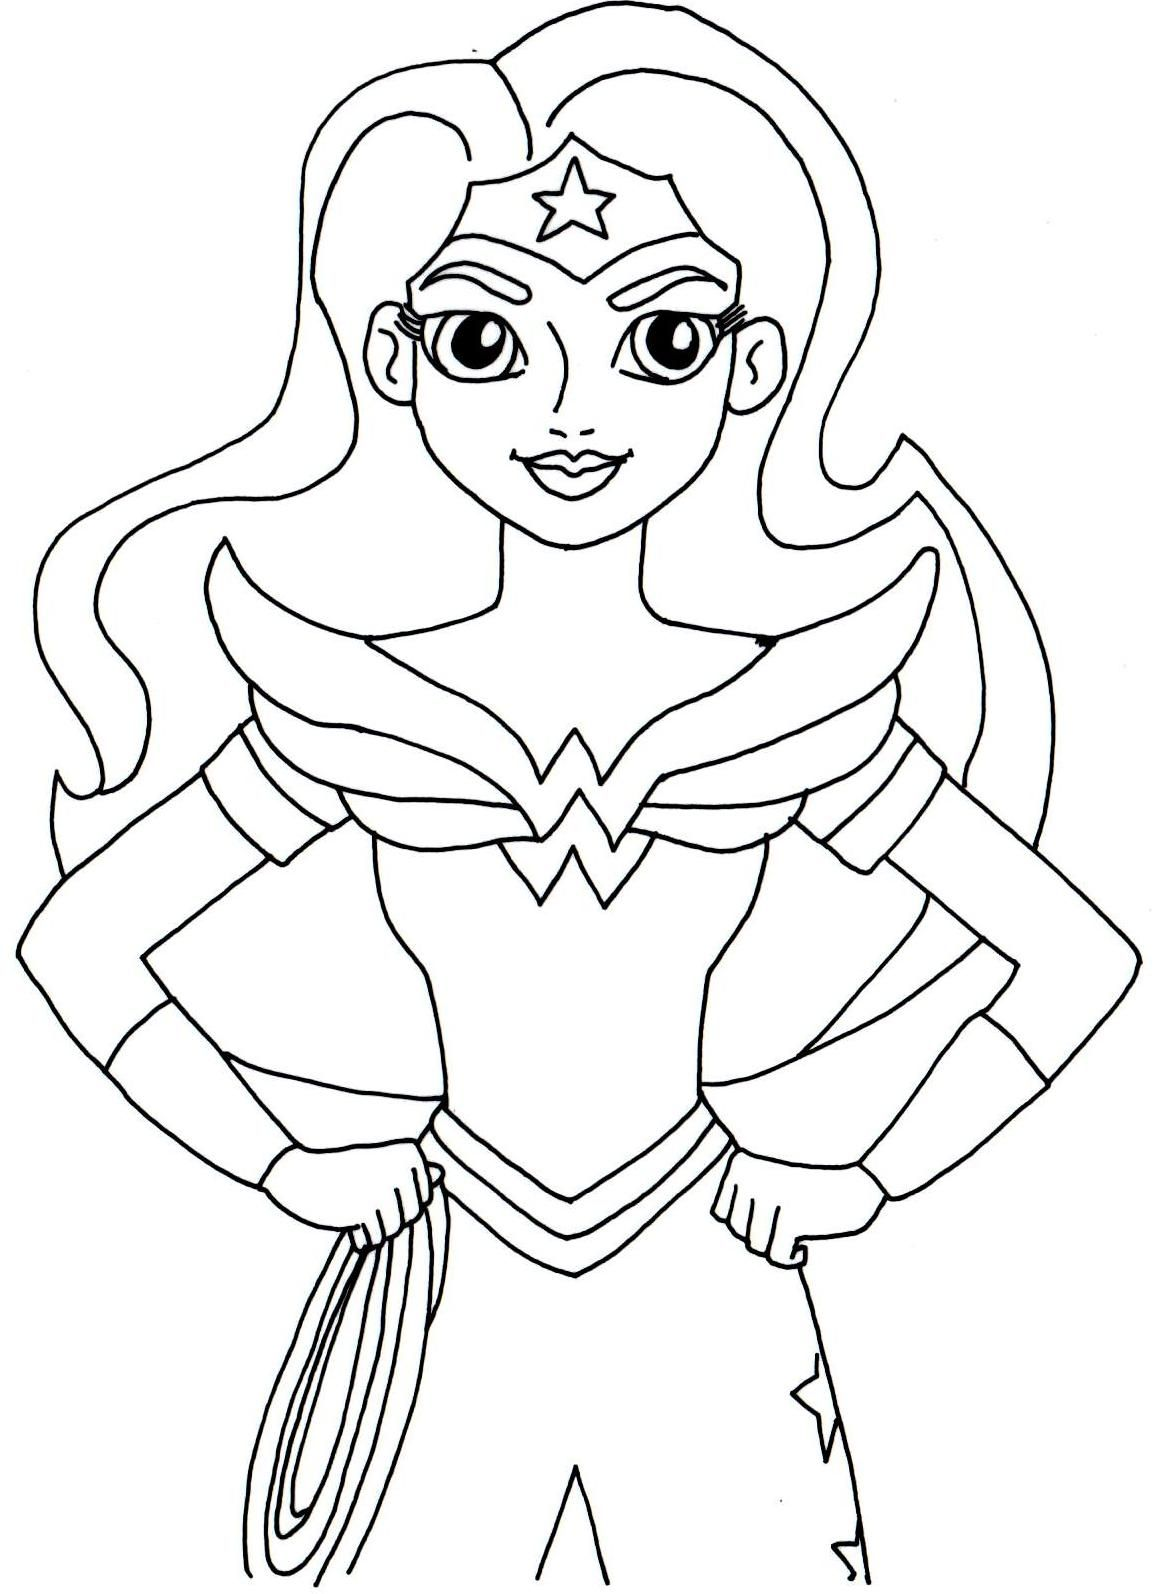 Wonder Woman Coloring Pages Best Superhero Coloring Pages Superhero Coloring Super Hero Coloring Sheets